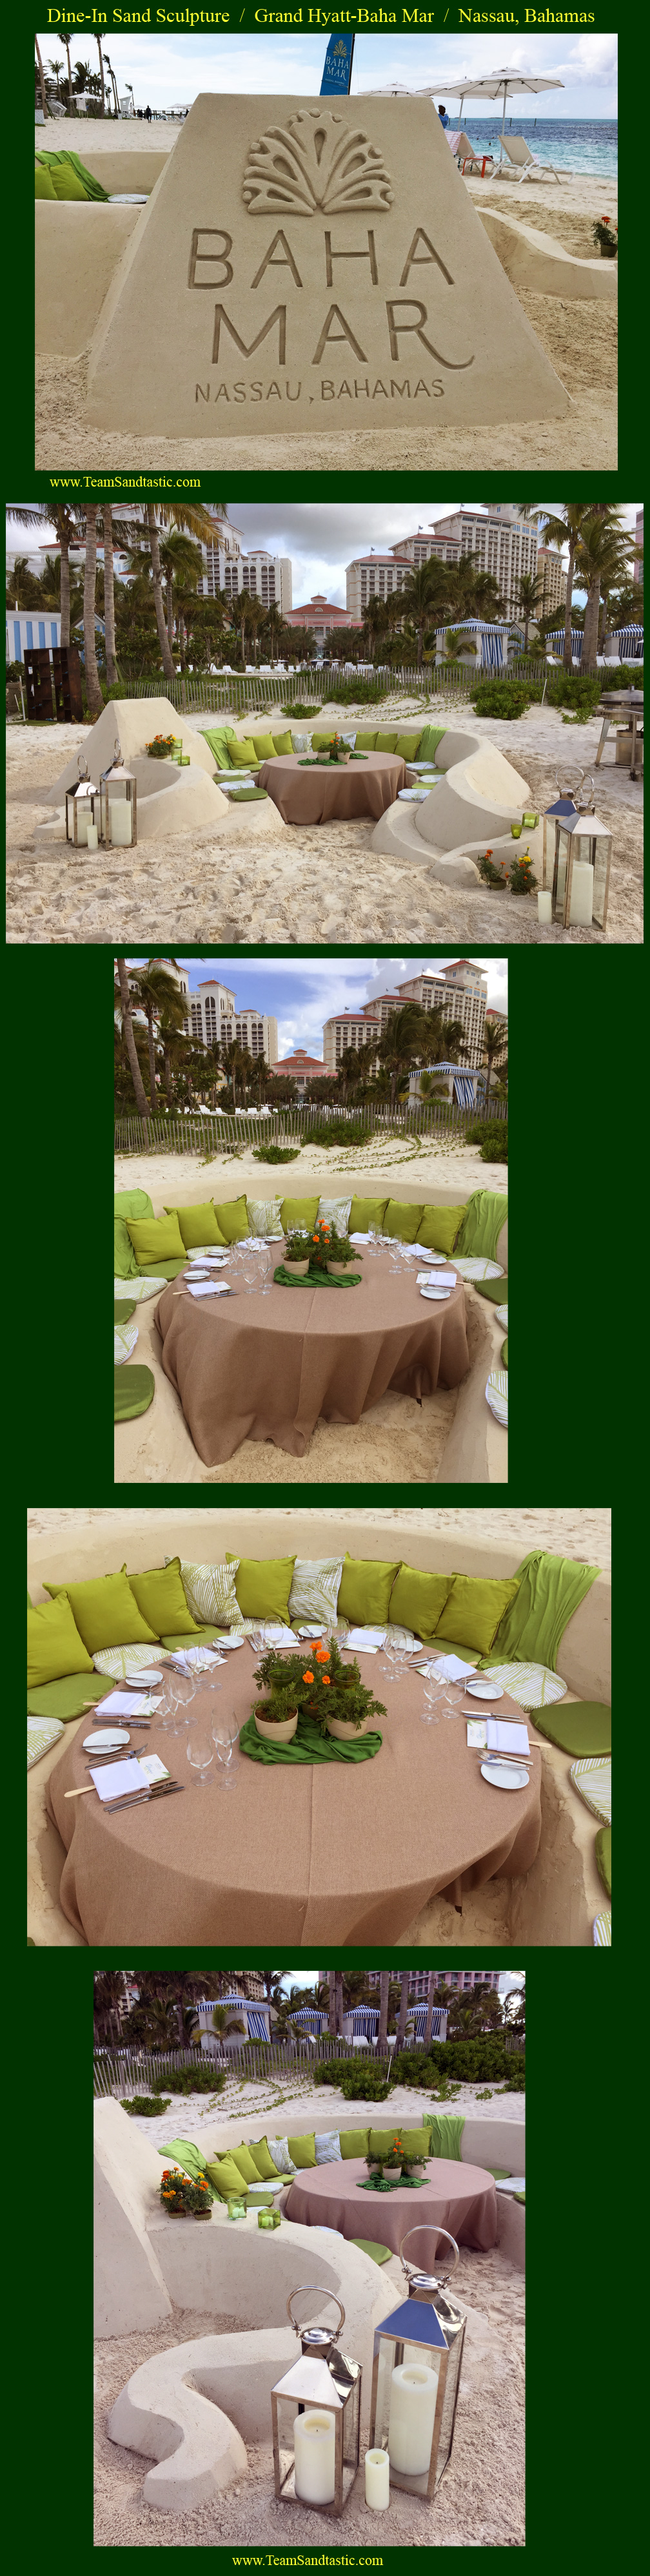 Guests Dining in the Sand